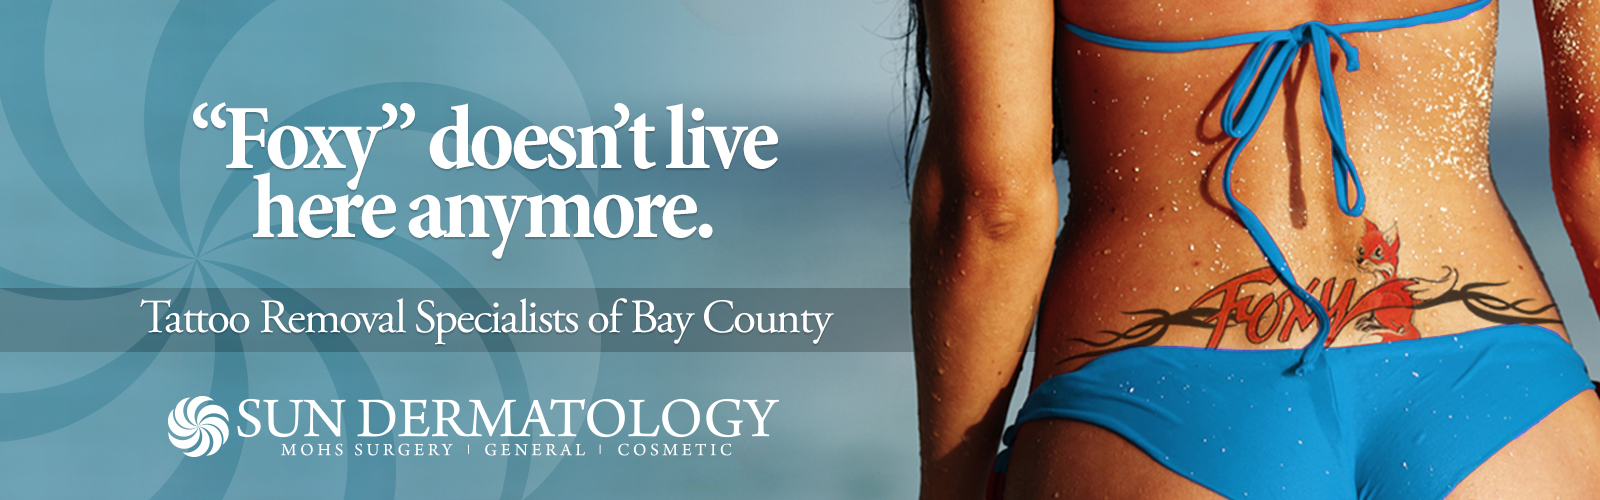 Dermatology Services and Procedures at Sun Dermatology in Panama City, Florida